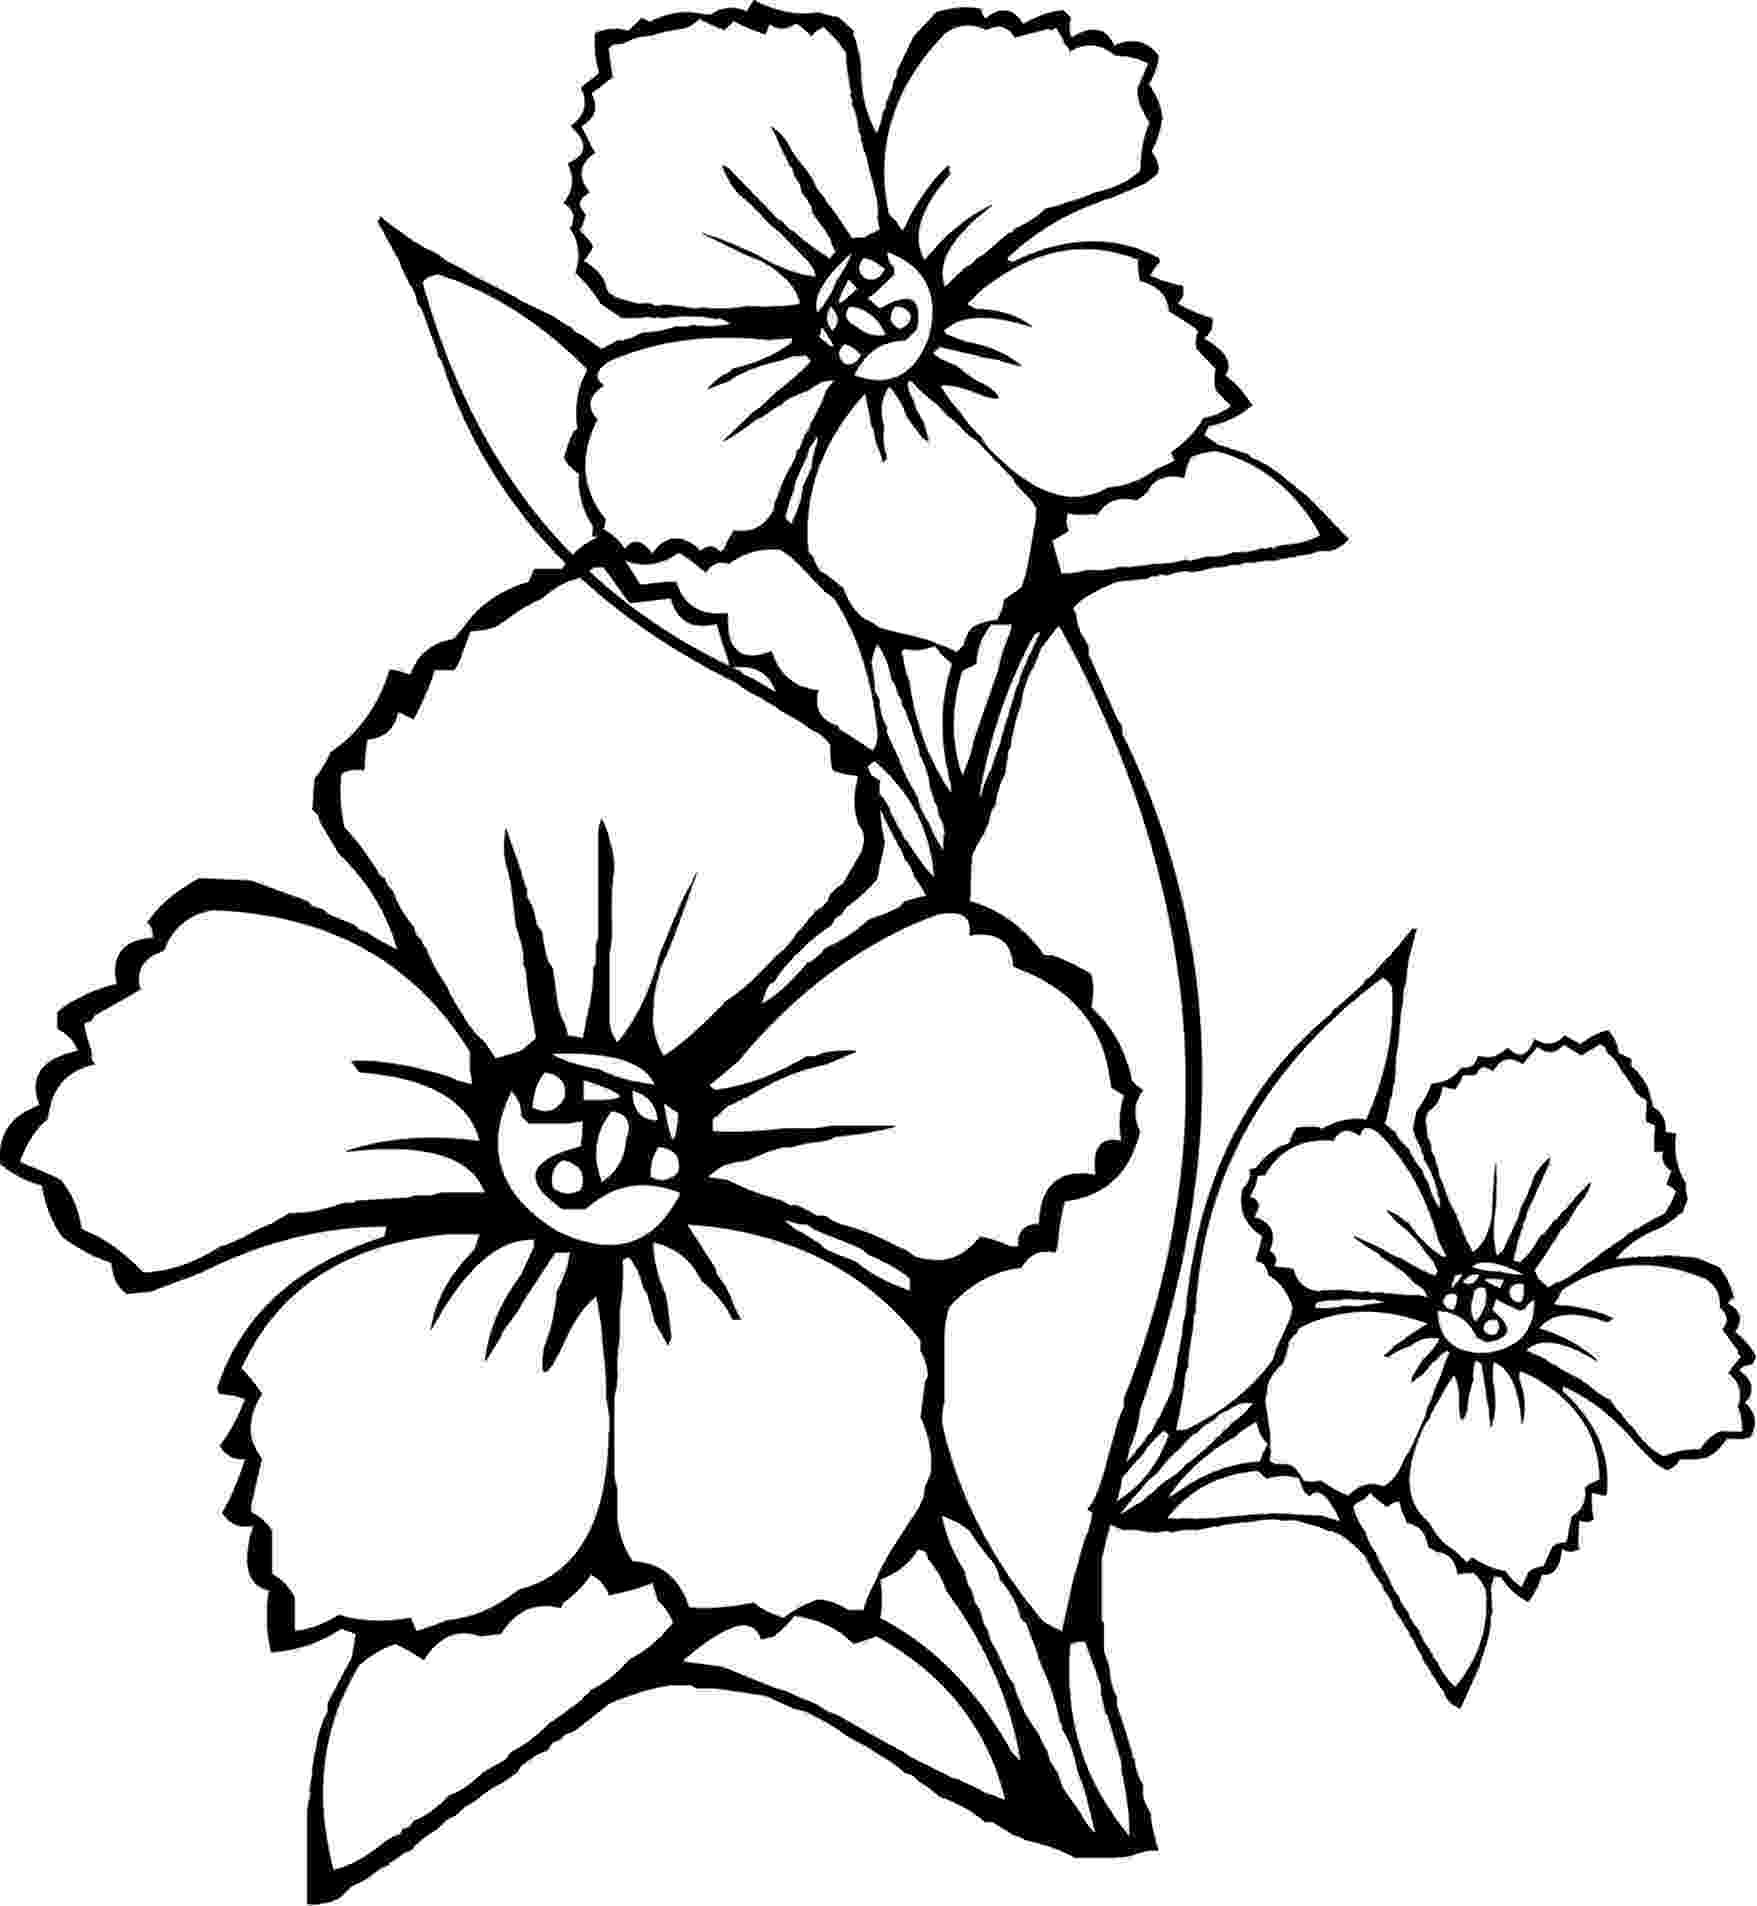 flower images to color free printable flower coloring pages for kids best images color flower to